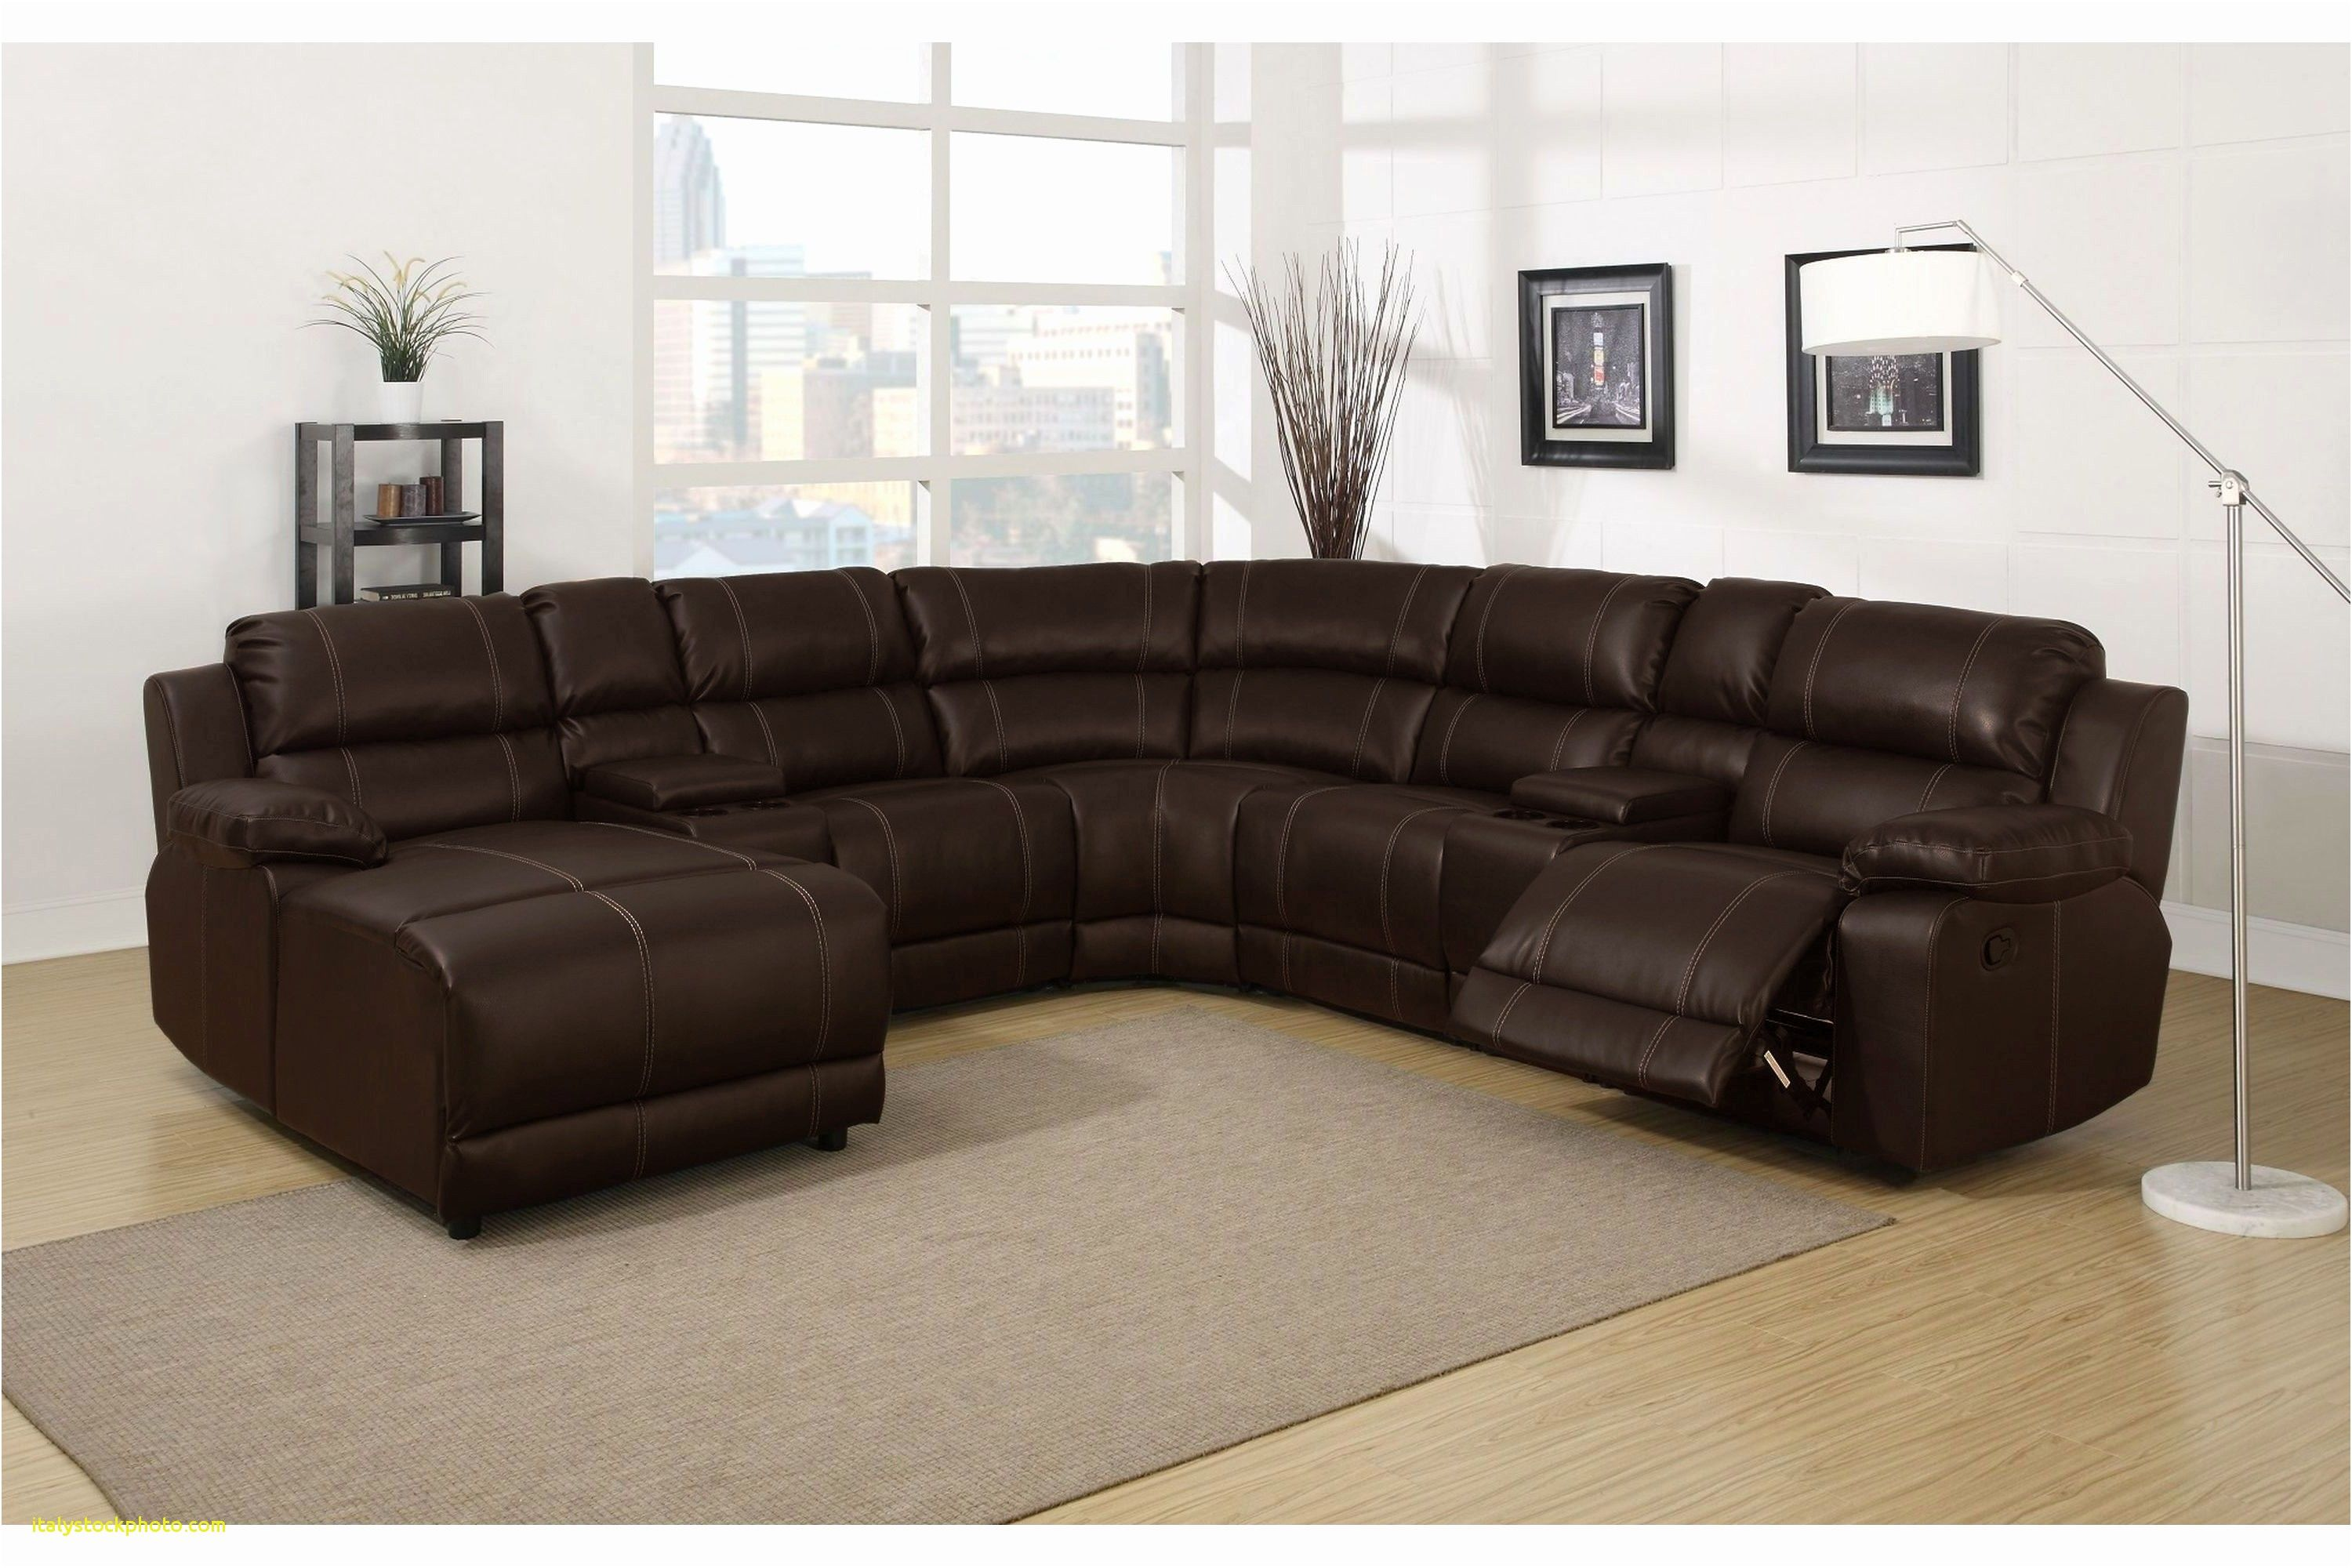 Cheap Couches For Sale Awesome Cheap Couches For Sale Under $100 Living  Room Sets Under $500   House For Rent Near Me #couchesforsale  #cheapsofabedforsale ...